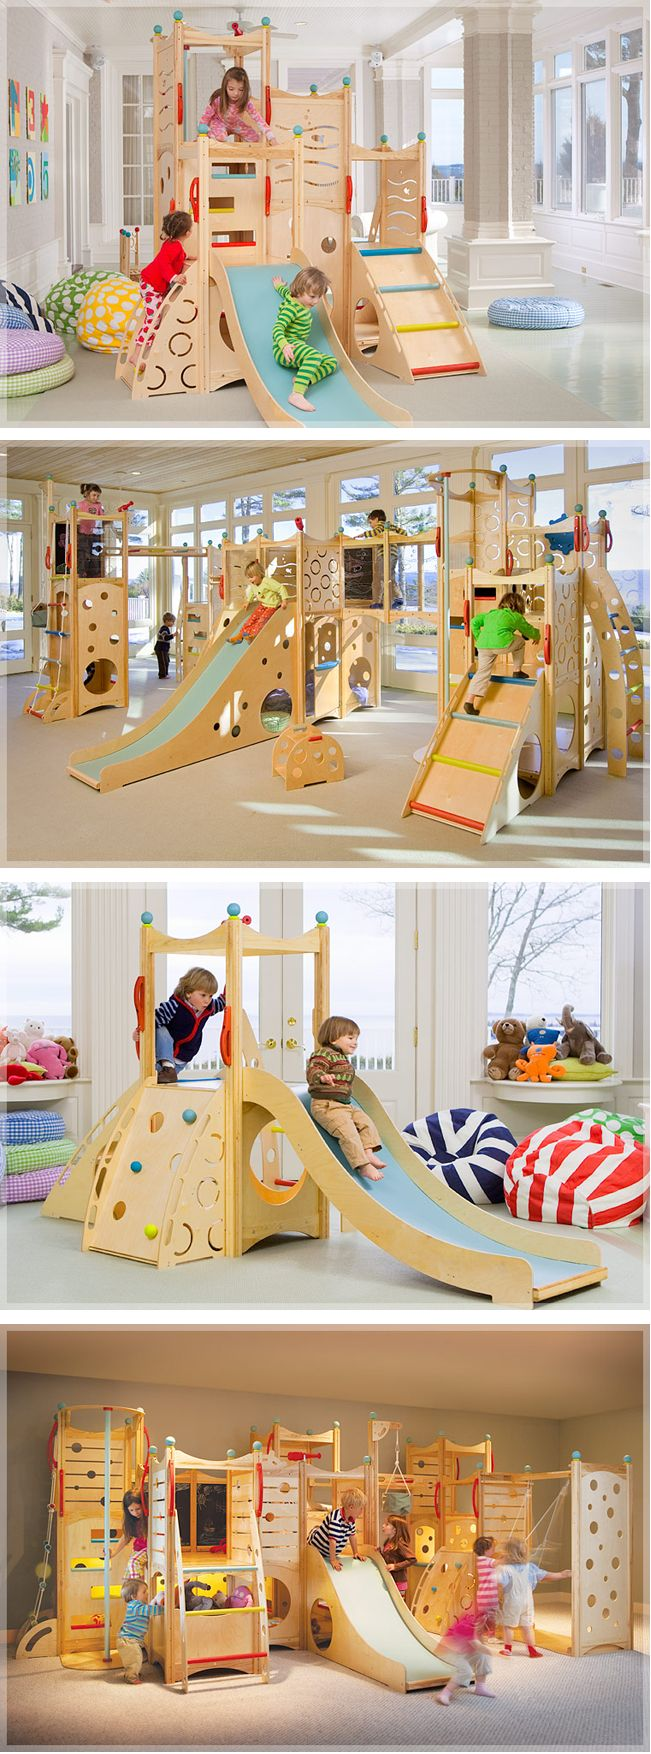 Awesome indoor play area! - Okay, this is amazing...all the kids ...